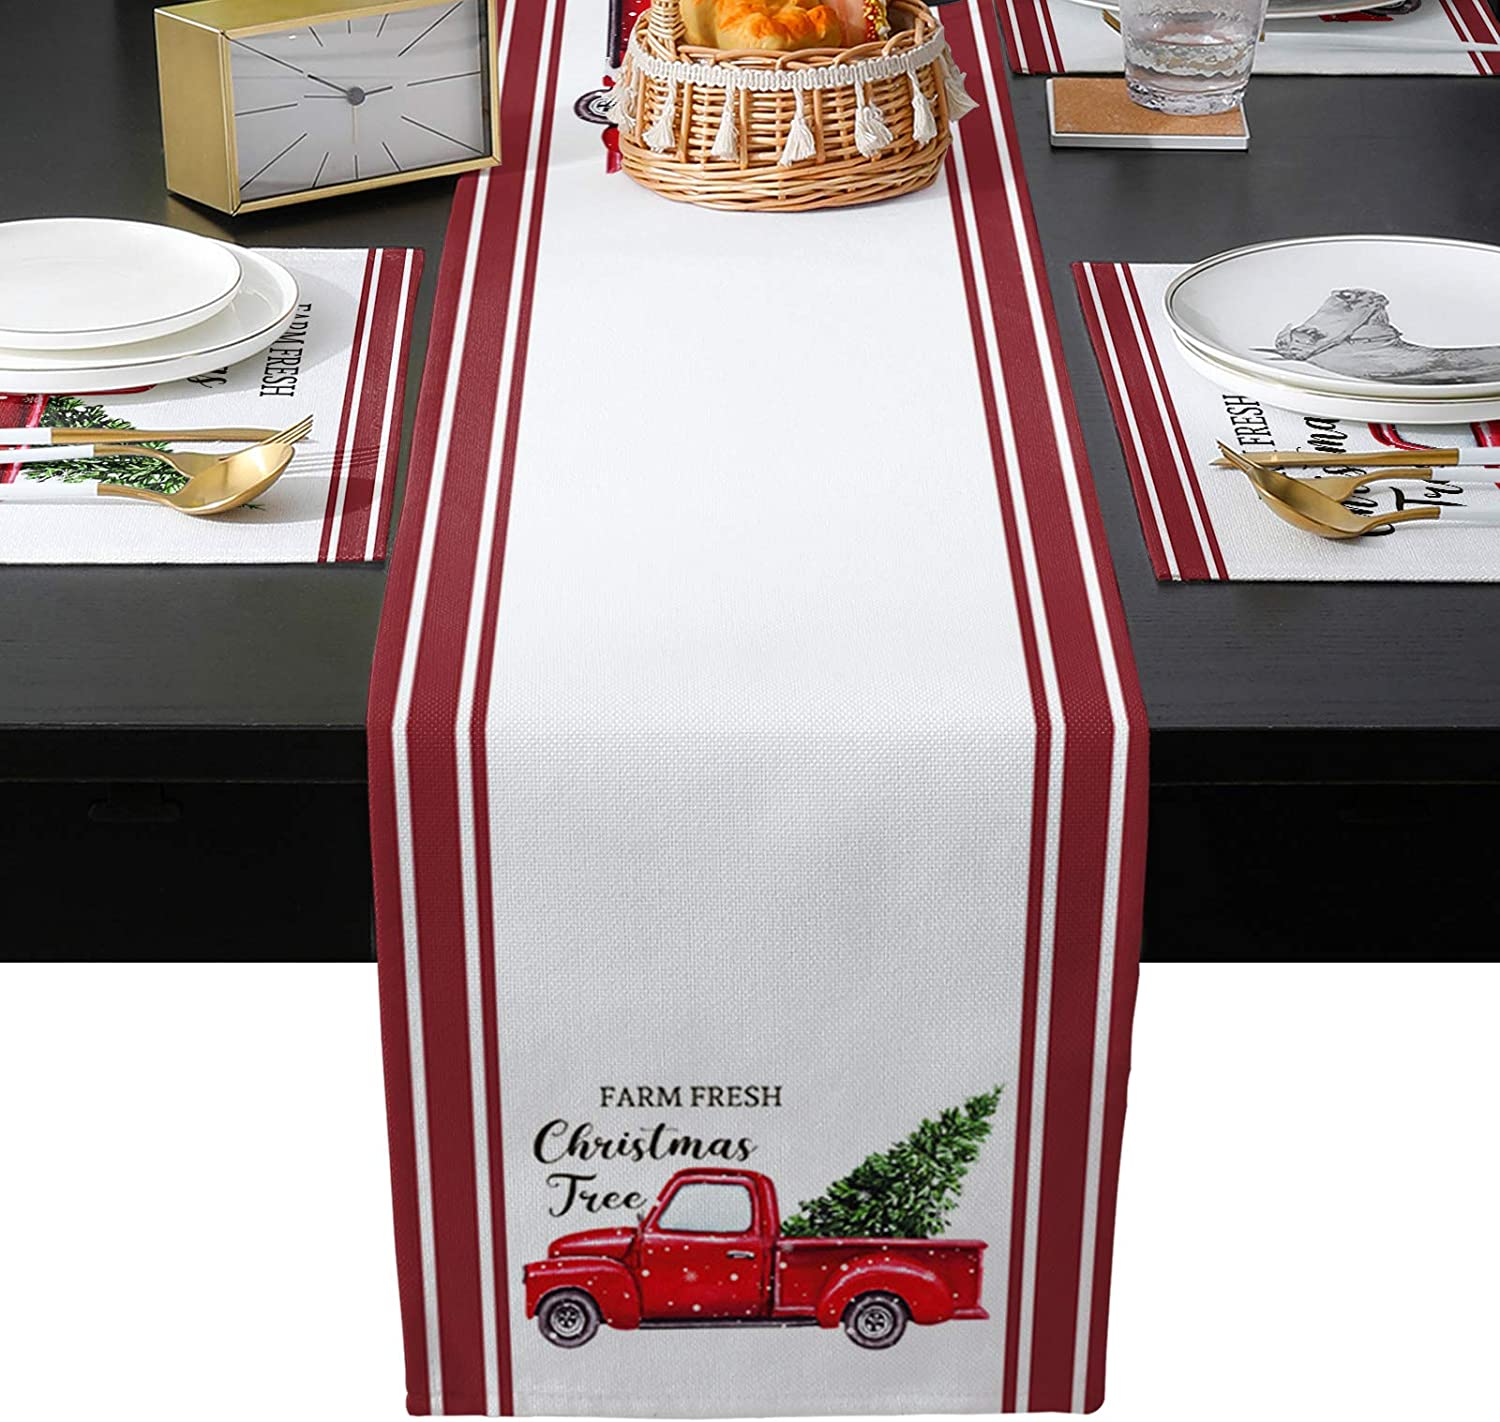 EZON-CH 6 Piece Table Mats Dresser and Scarves Chr Runner 5% OFFer OFF